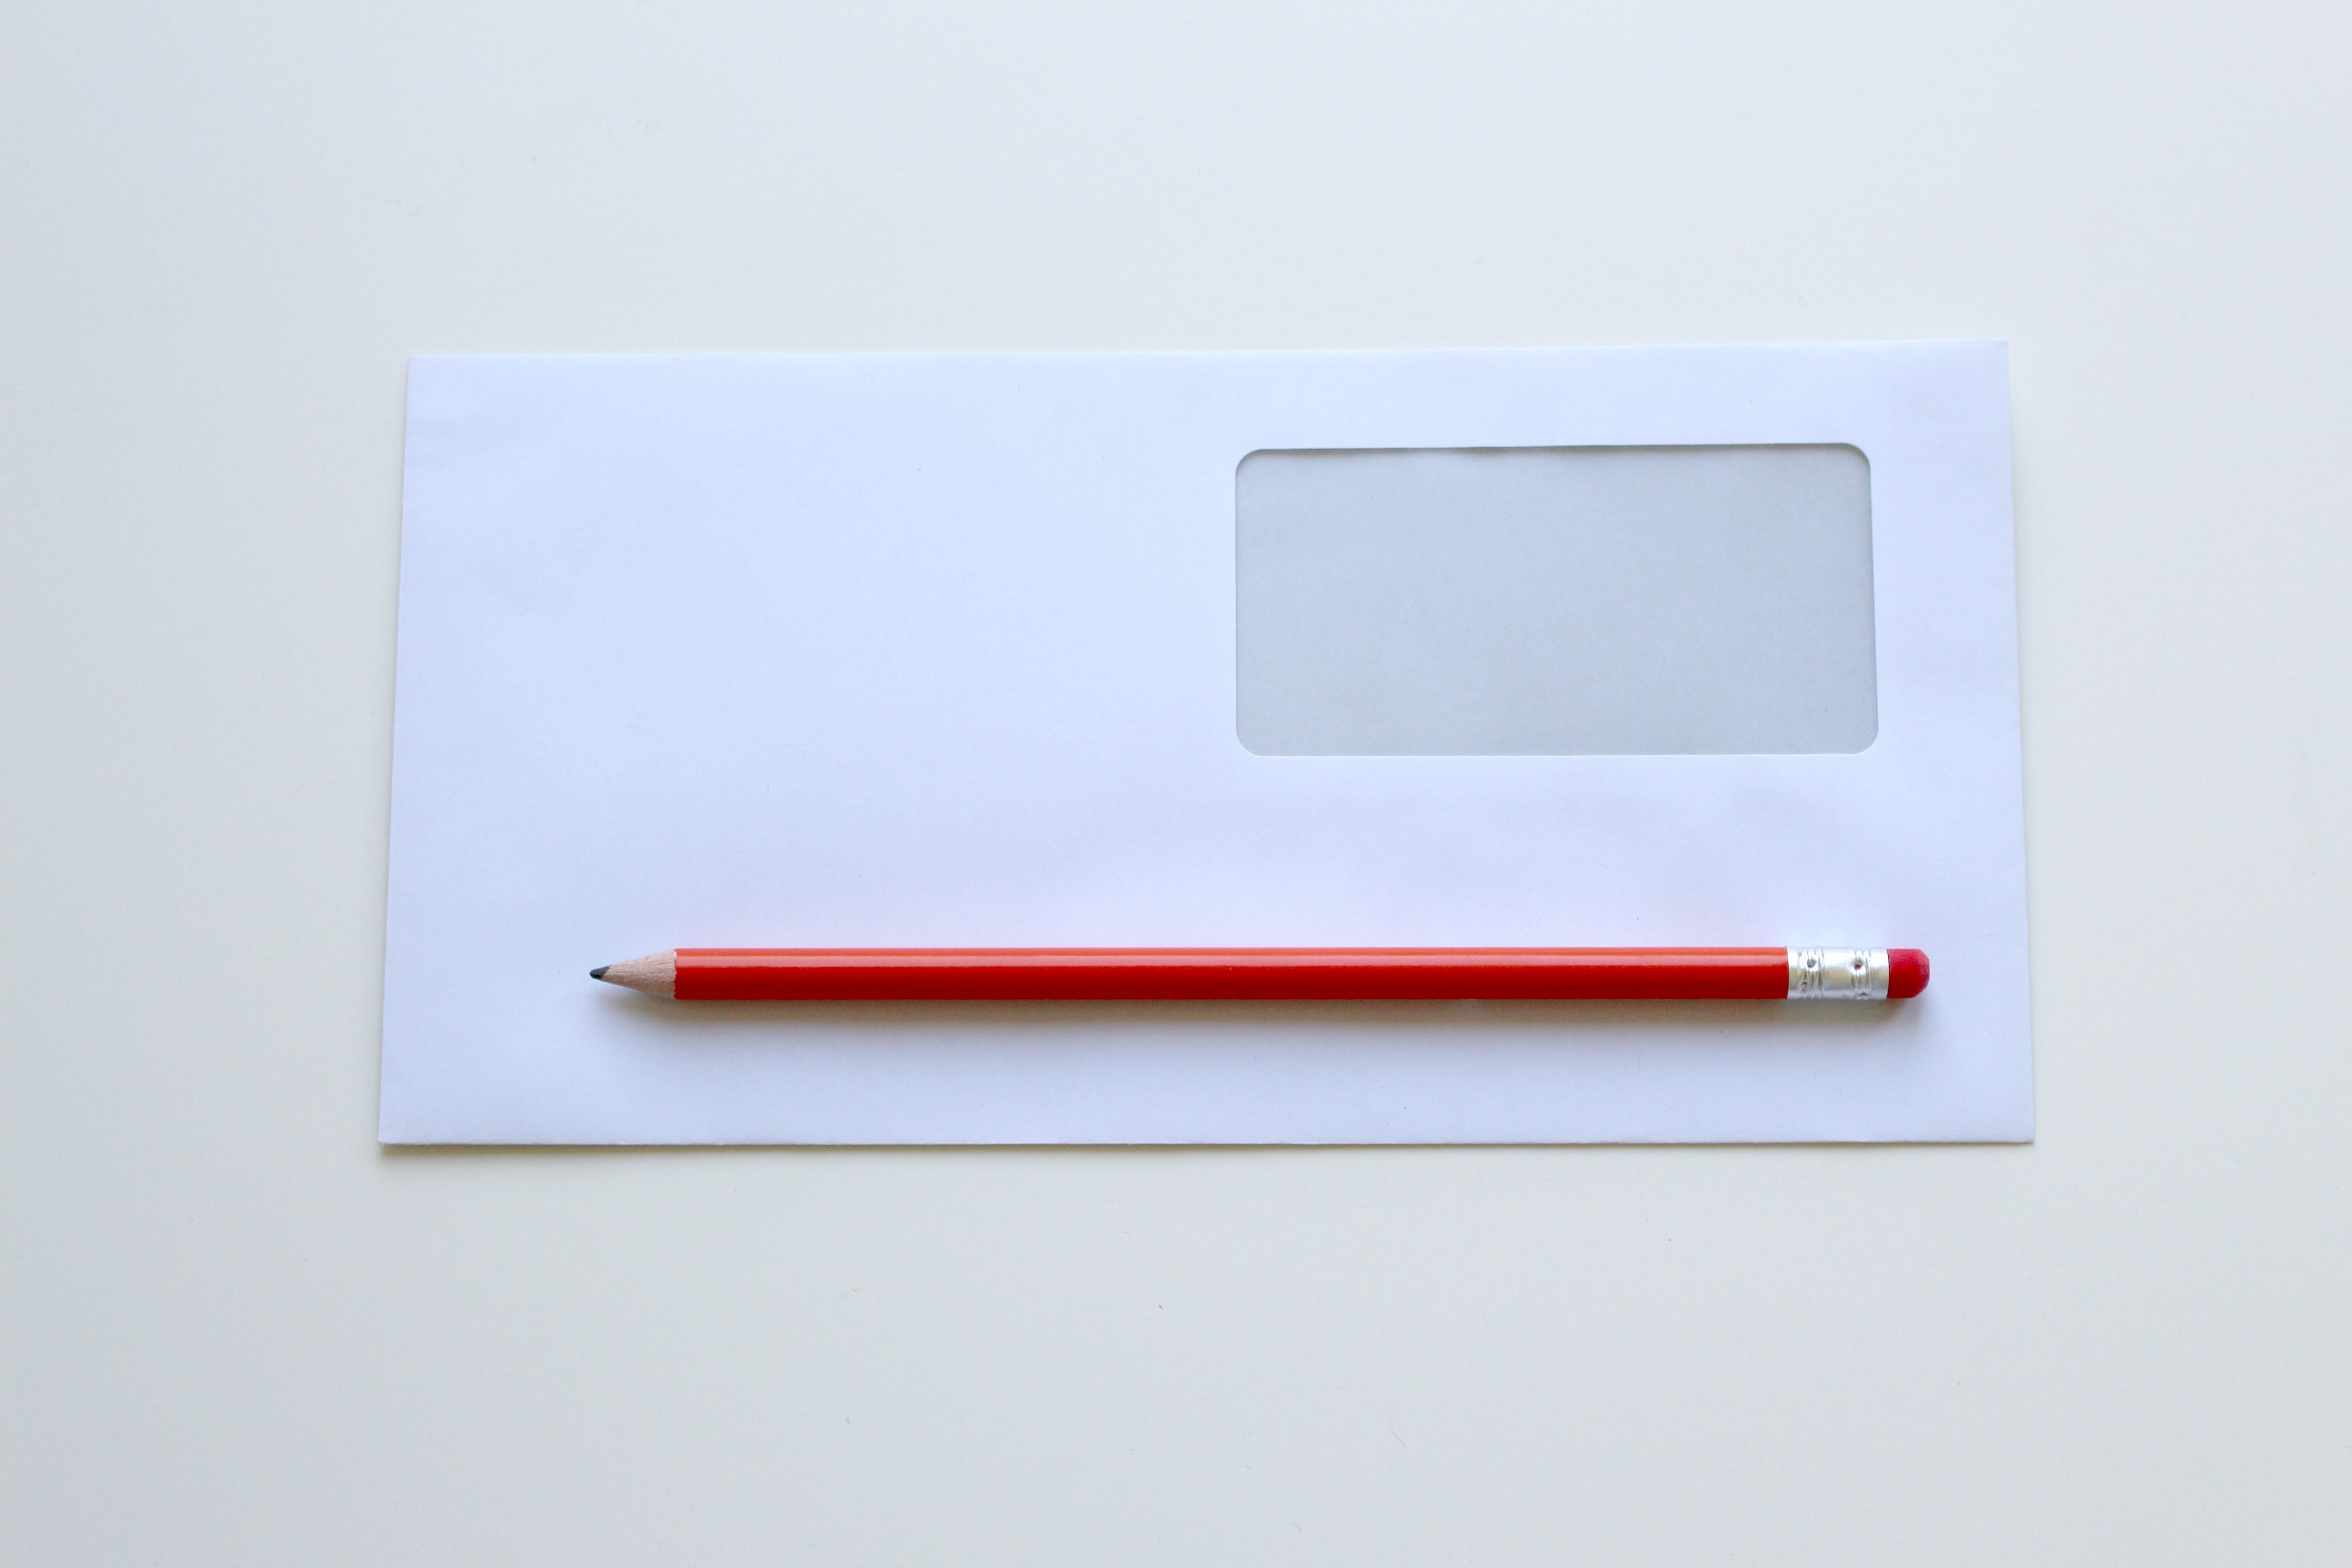 Red Pencil on Top of White Window Envelope